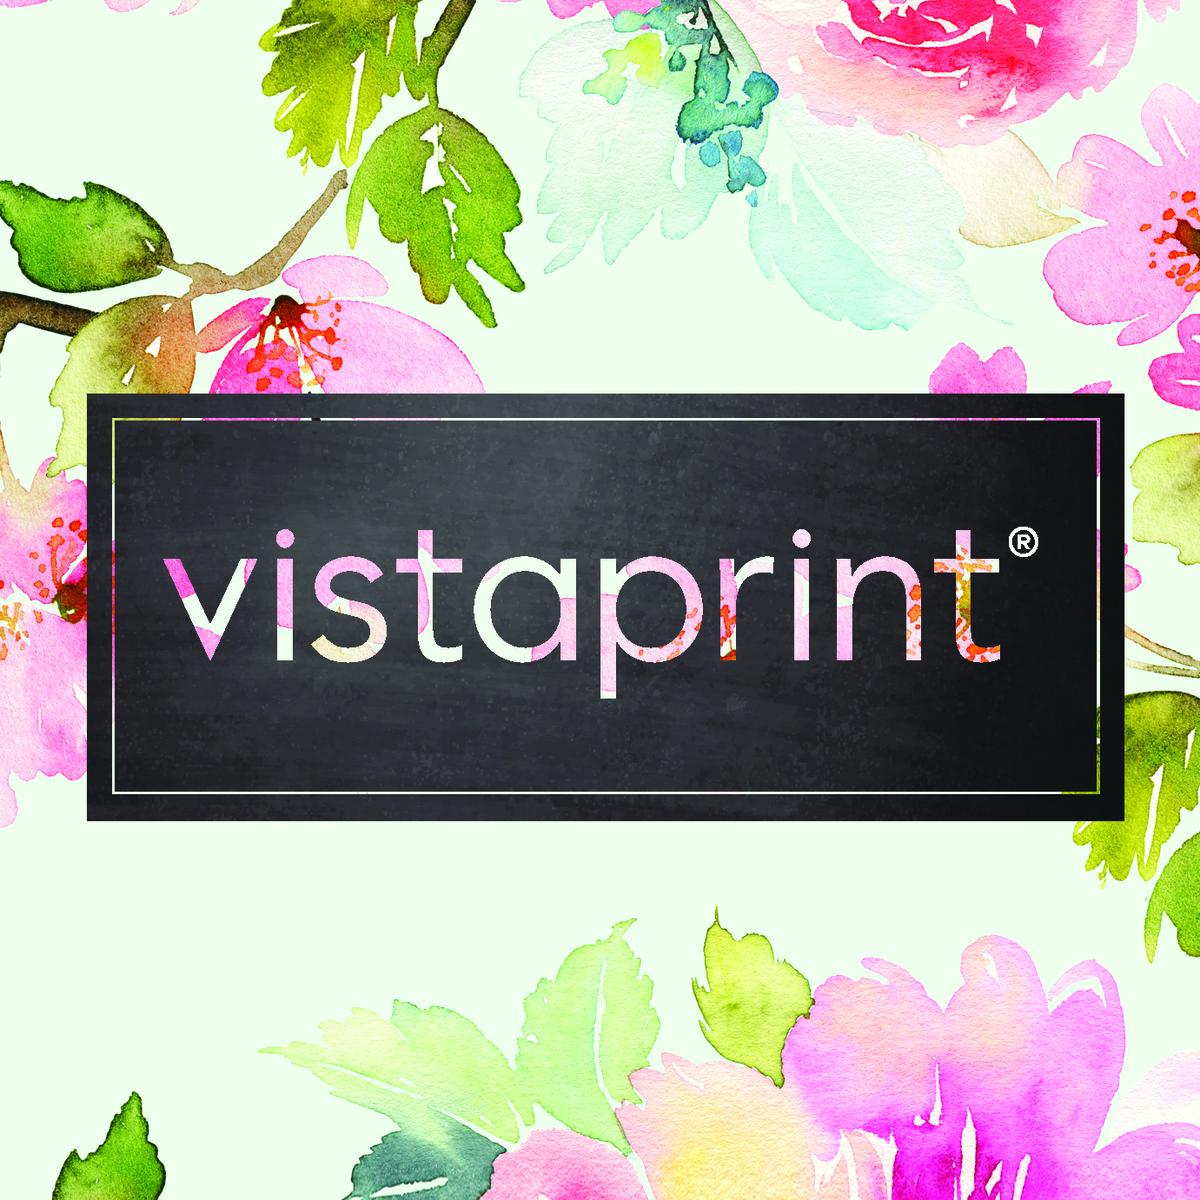 Vistaprint Reviews - Waltham, MA - 3516 Reviews